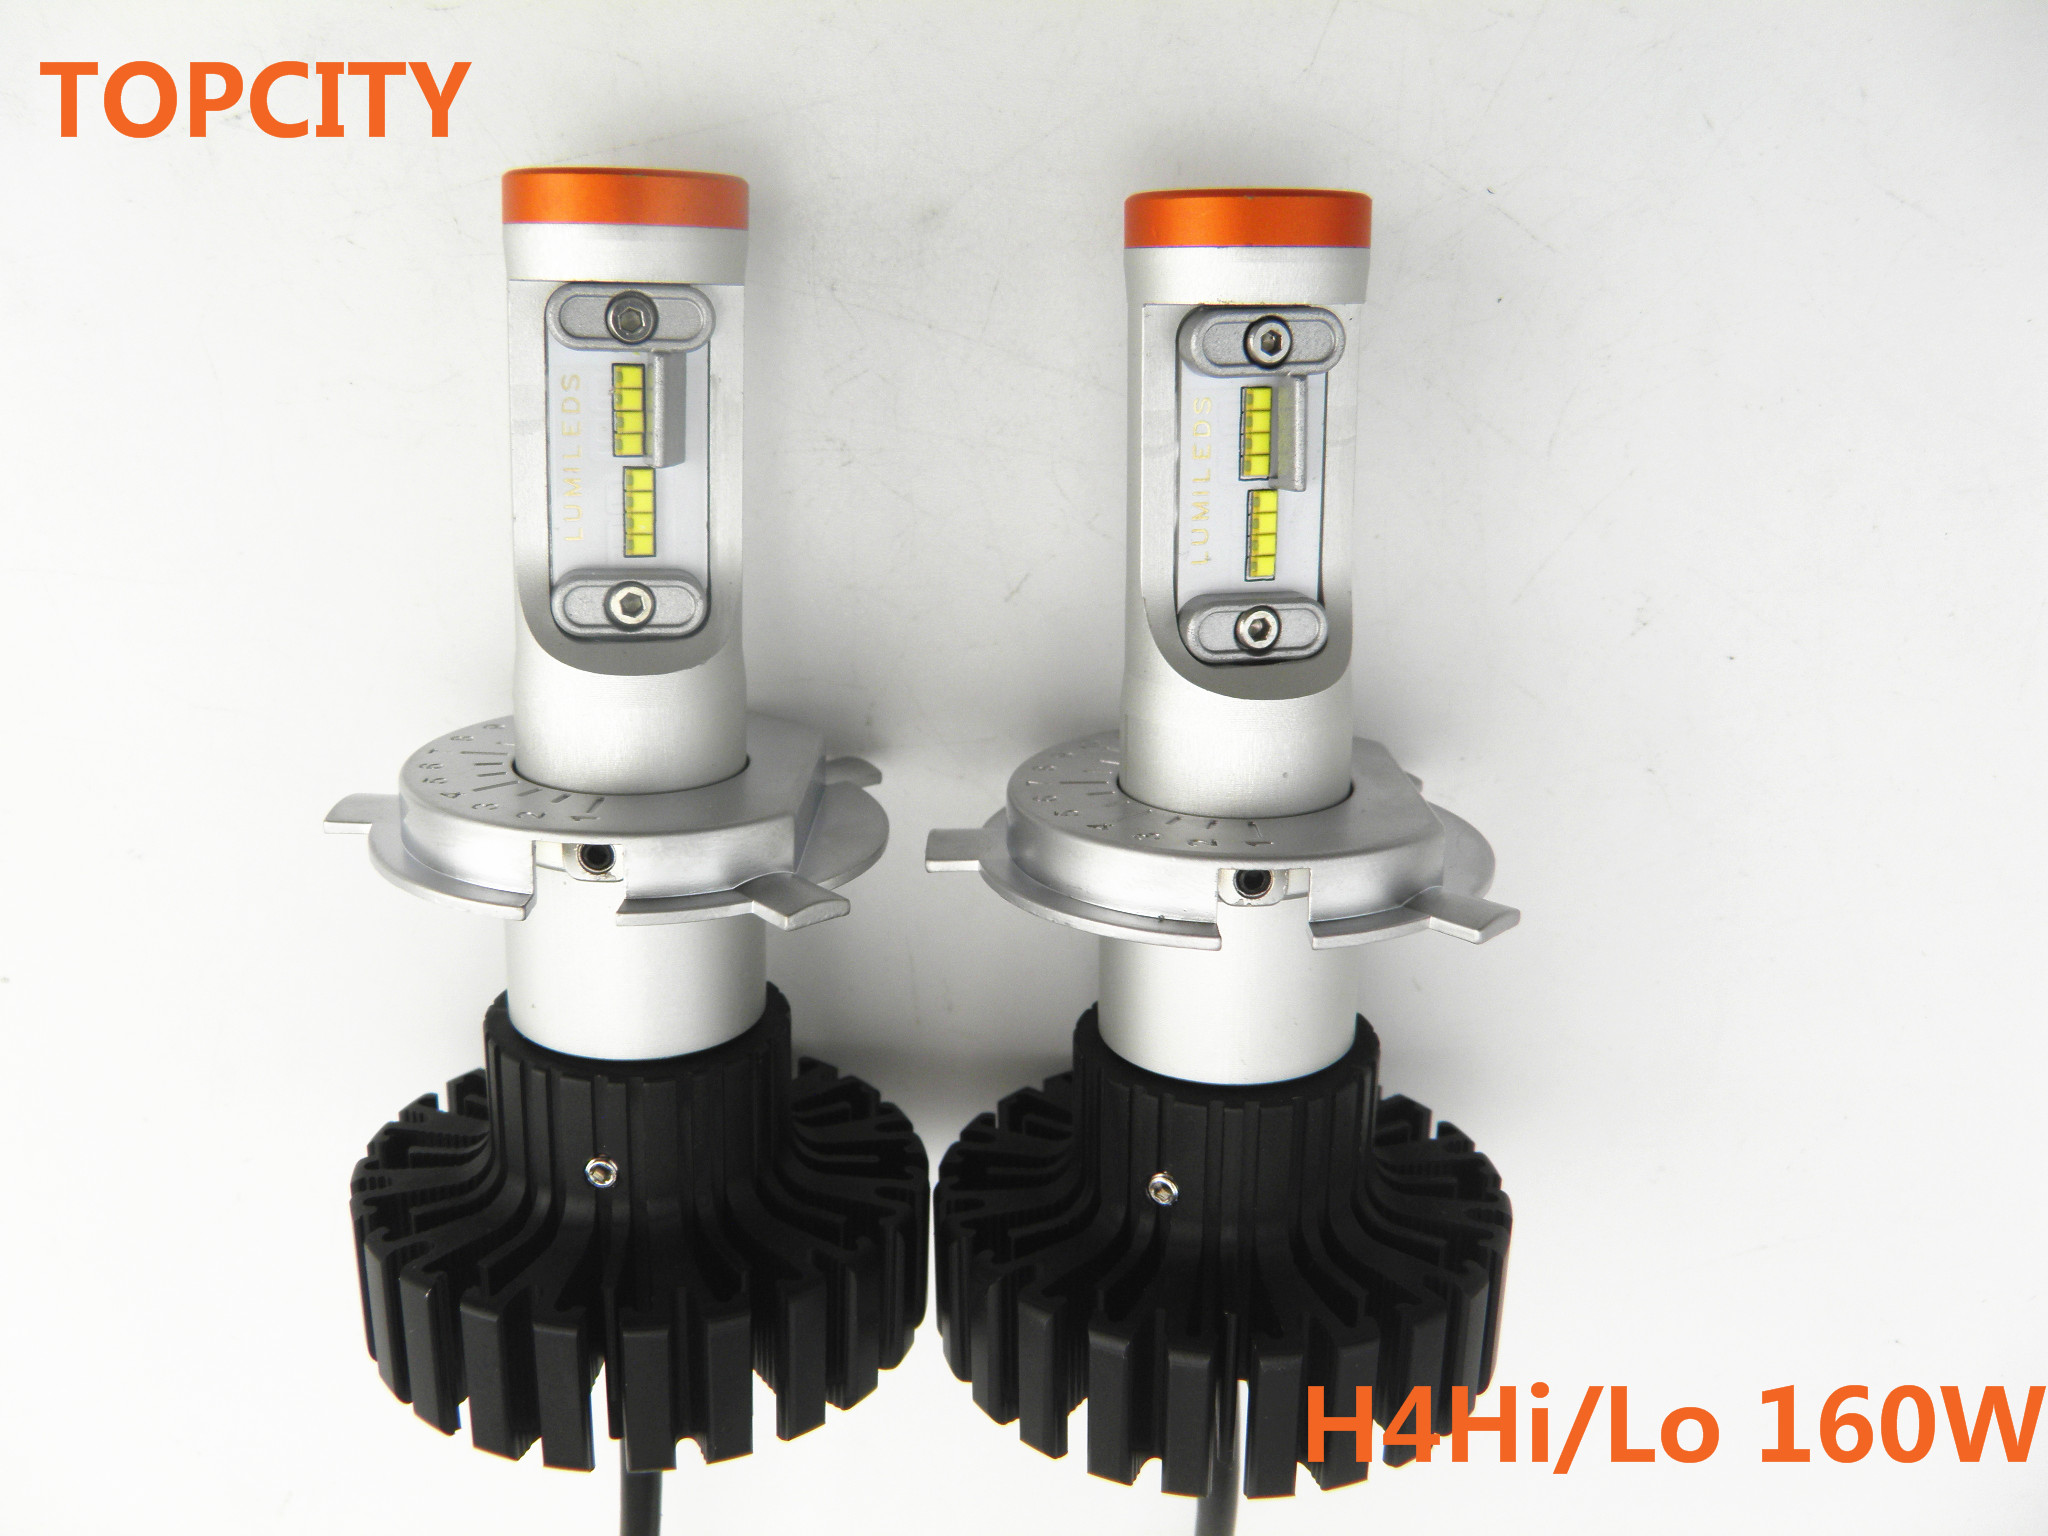 New arrival Car Lights LED H4 Hi/Lo Beam H4 160W H4 headlight bulb manufacturer